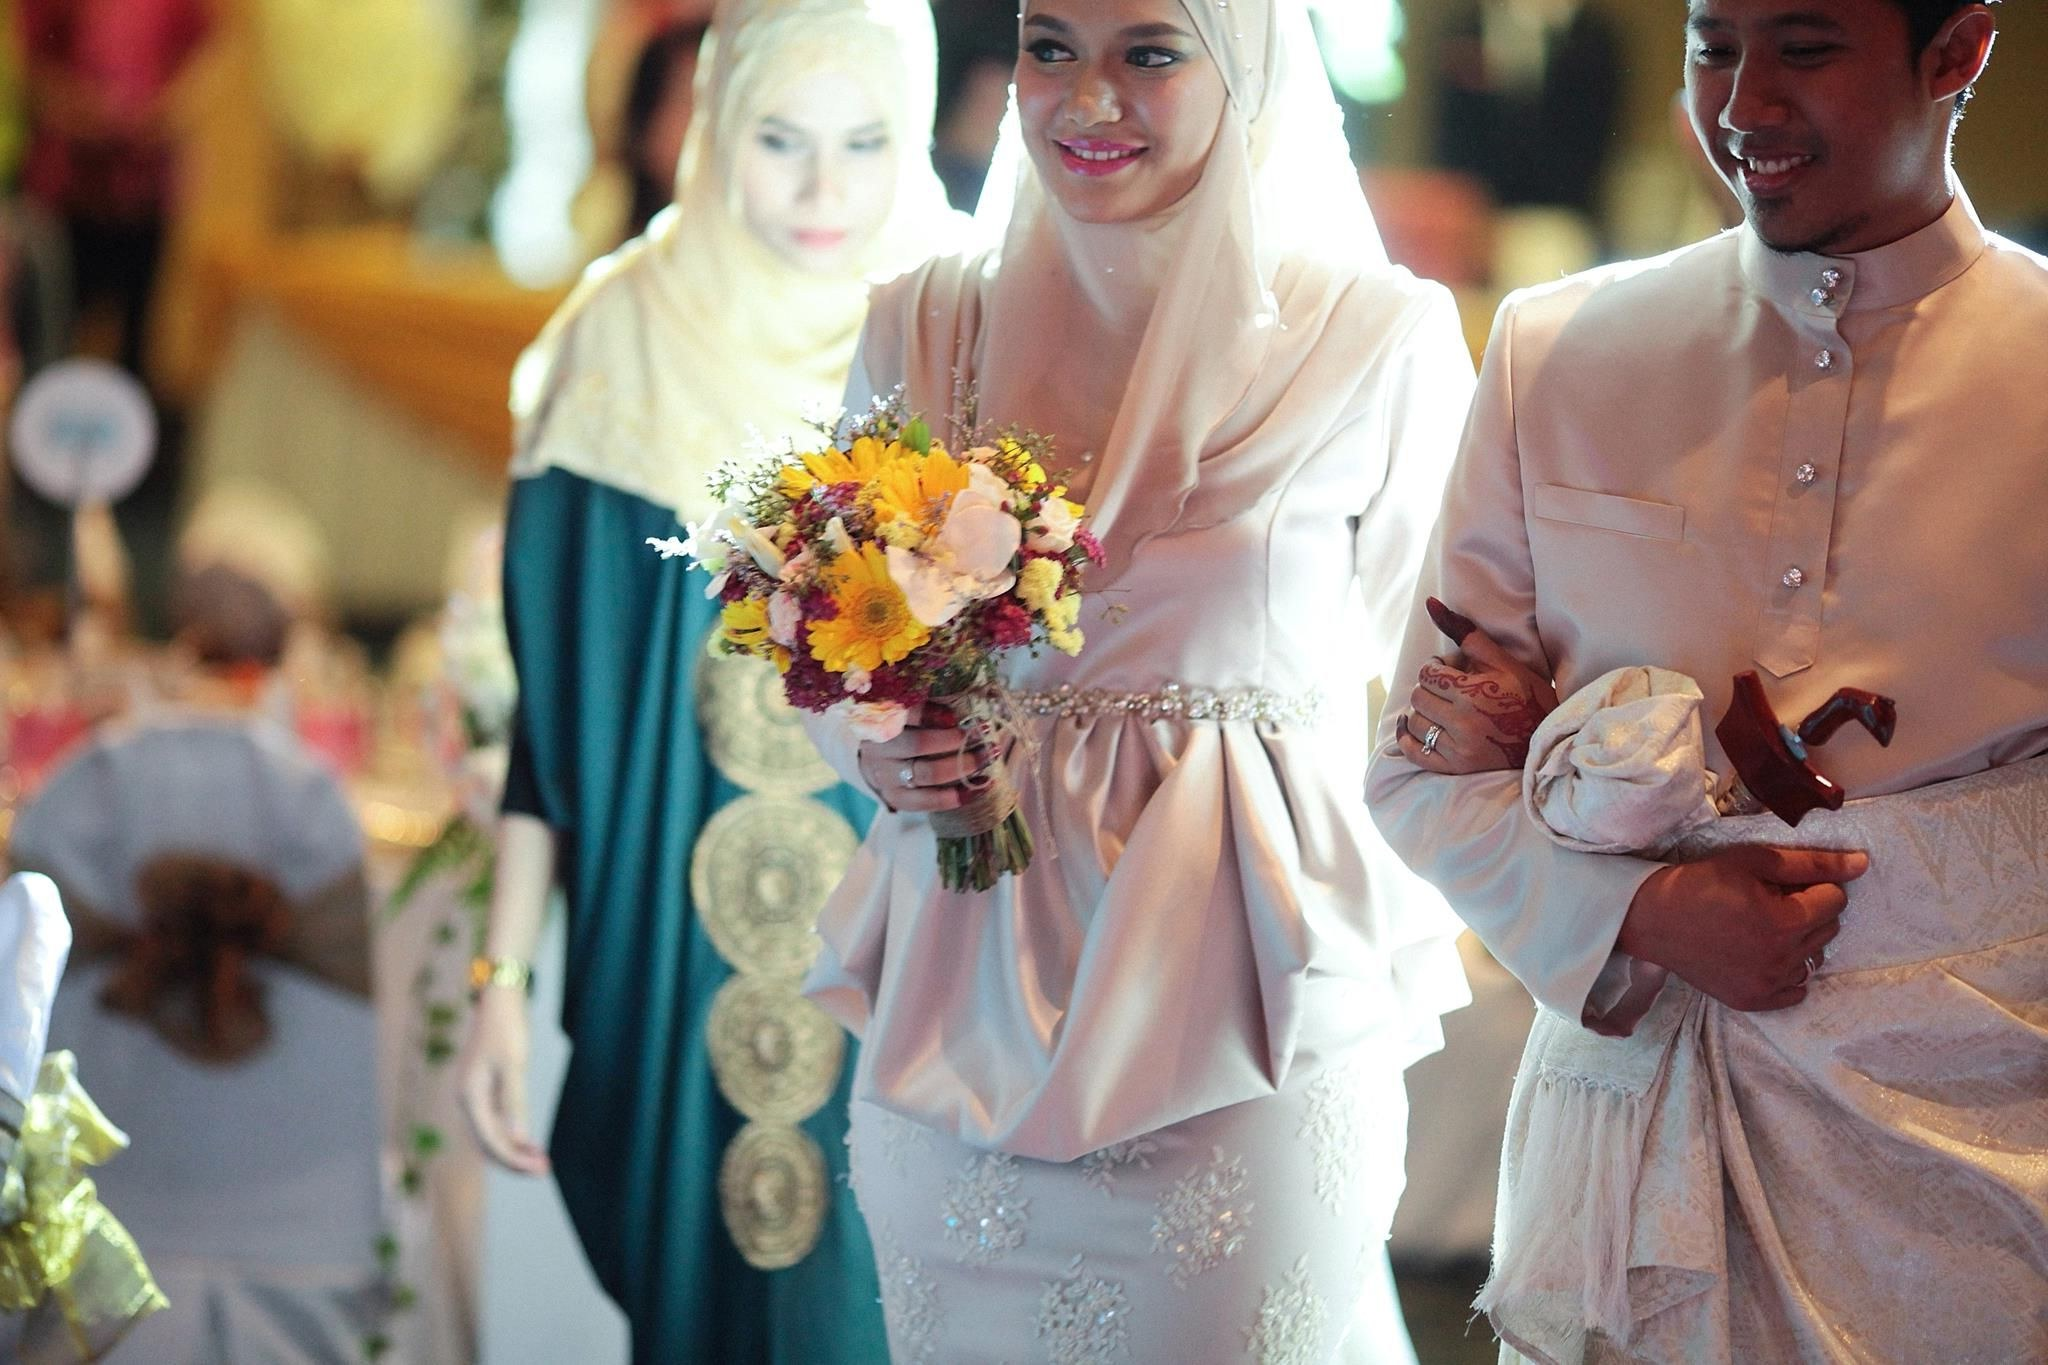 Ide Hijab Bridesmaid Ftd8 Malay Wedding the Reception Beige for the Newlyweds and